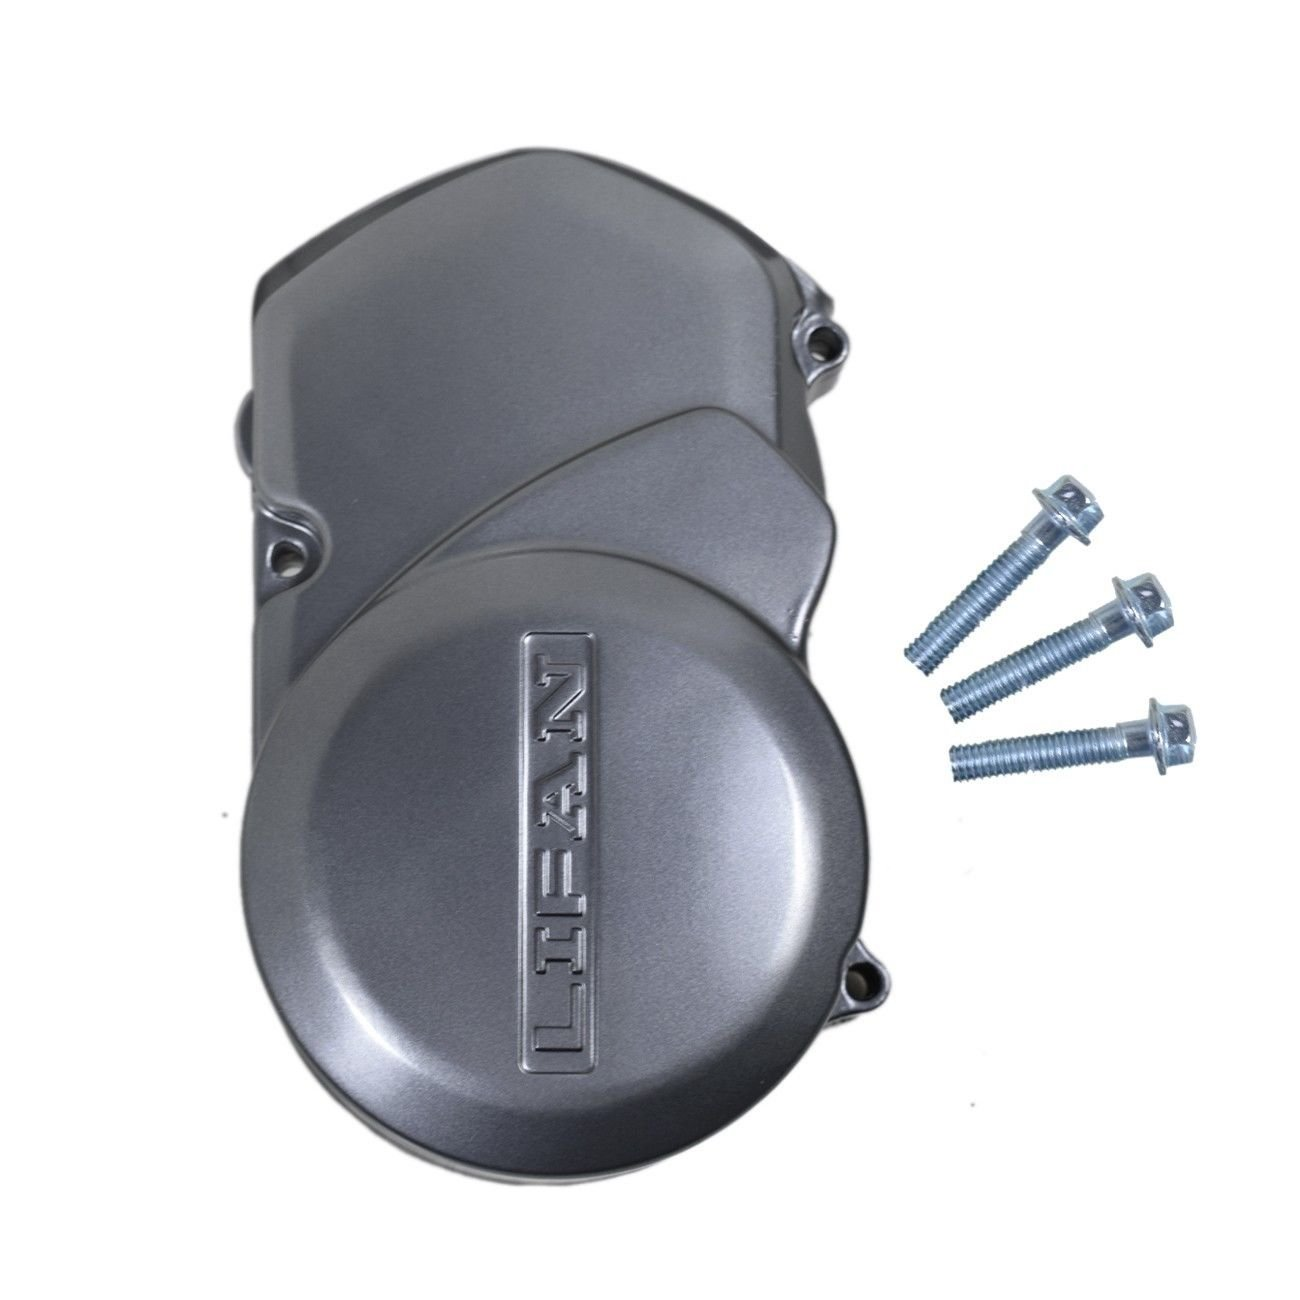 TDPRO Lifan Left Side Cover Magneto Engine Cover for 125cc Pit Dirt Bike